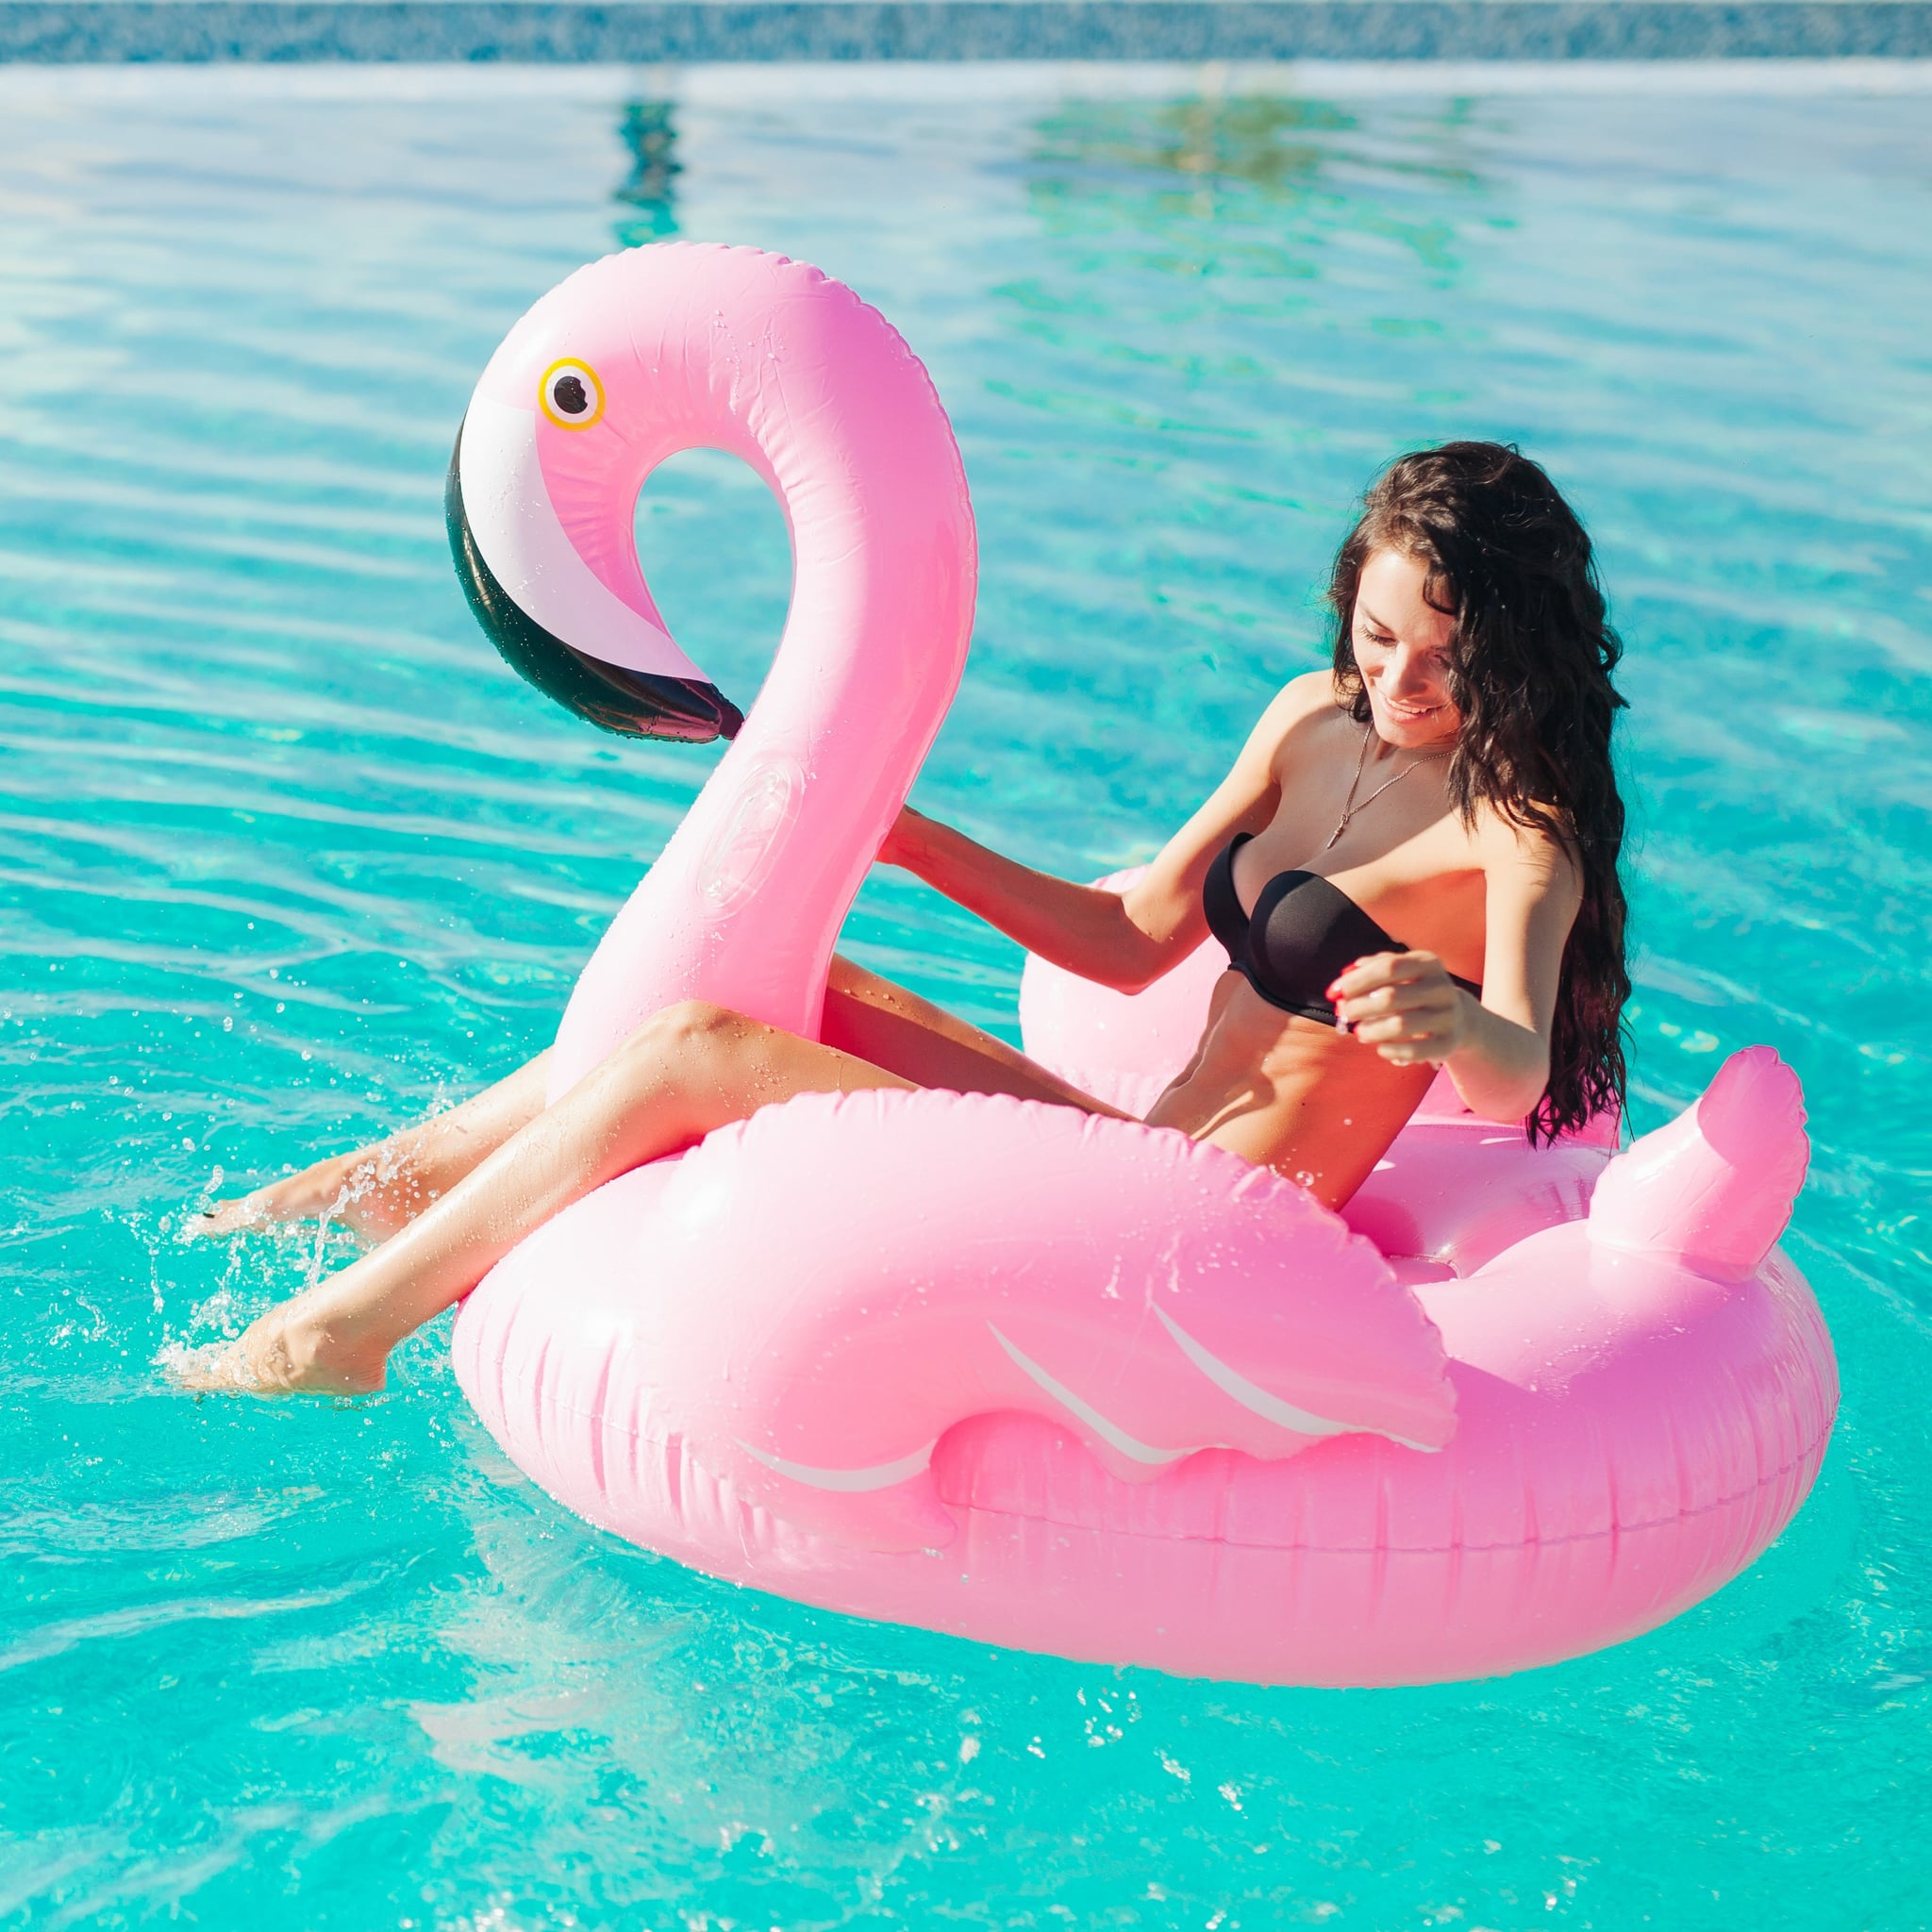 Summer instagram trends popsugar smart living voltagebd Gallery